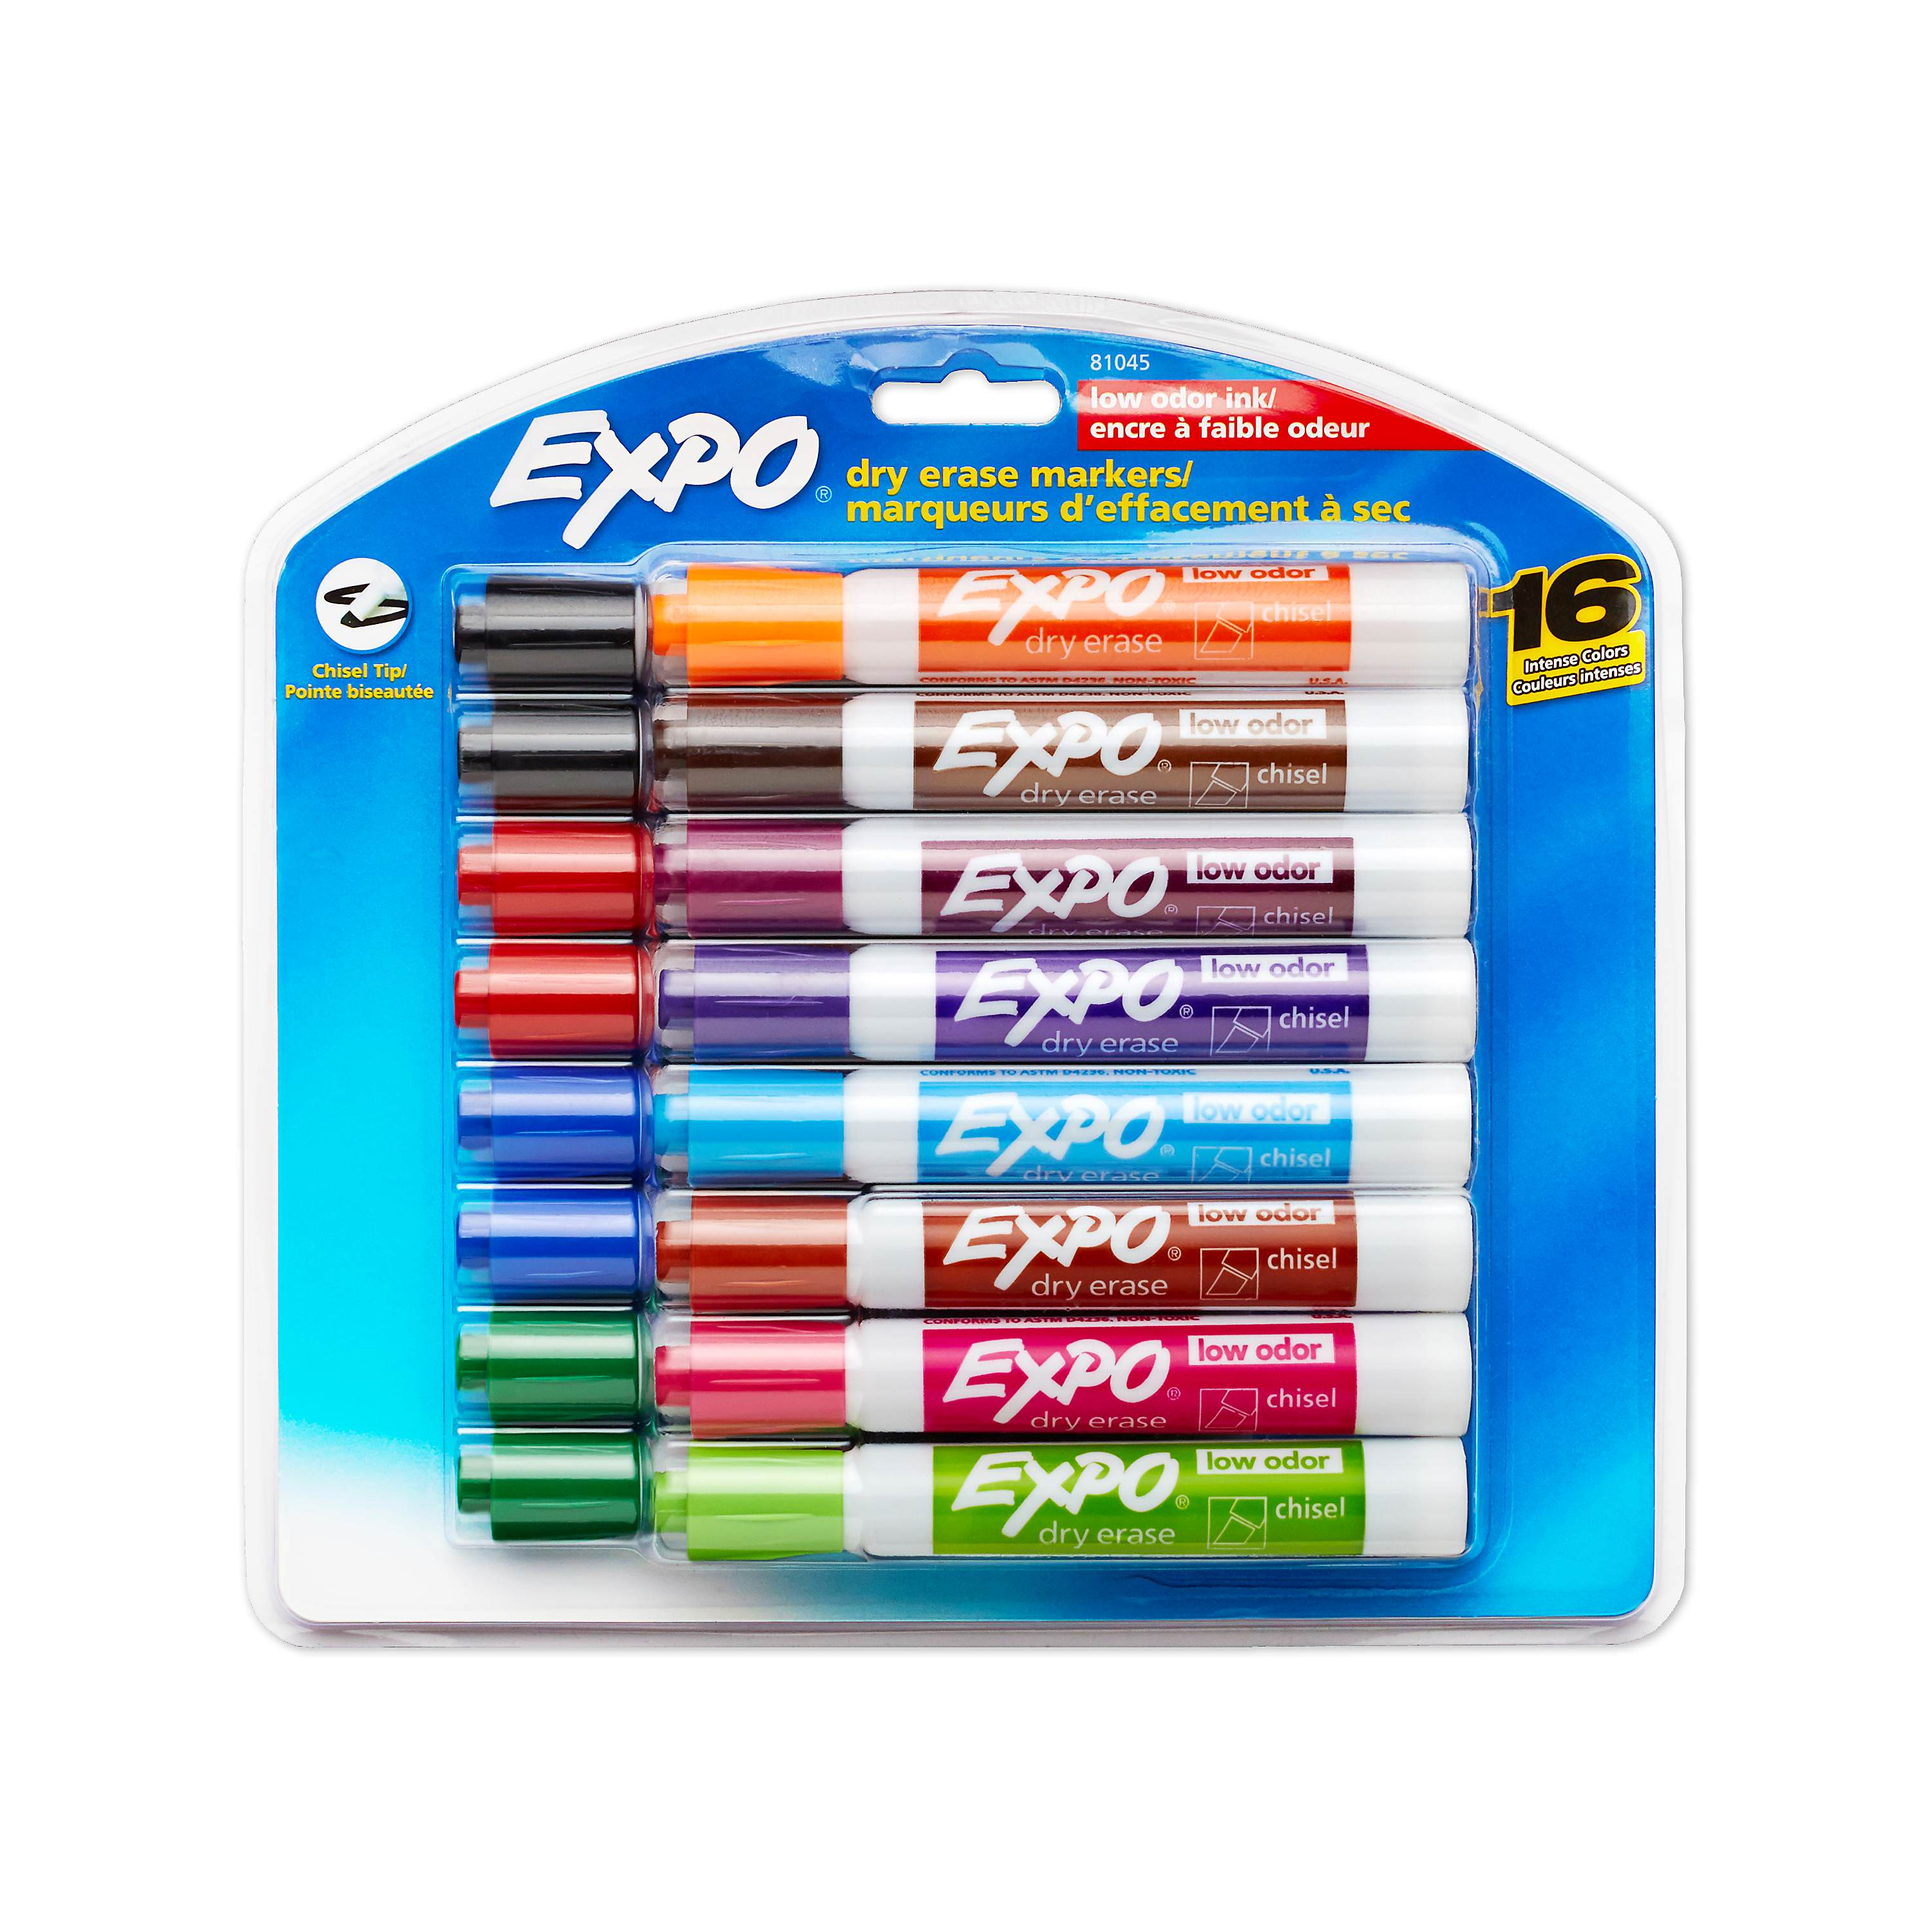 EXPO Low Odor Dry Erase Markers, Chisel Tip, Assorted Colors, 16 Pack